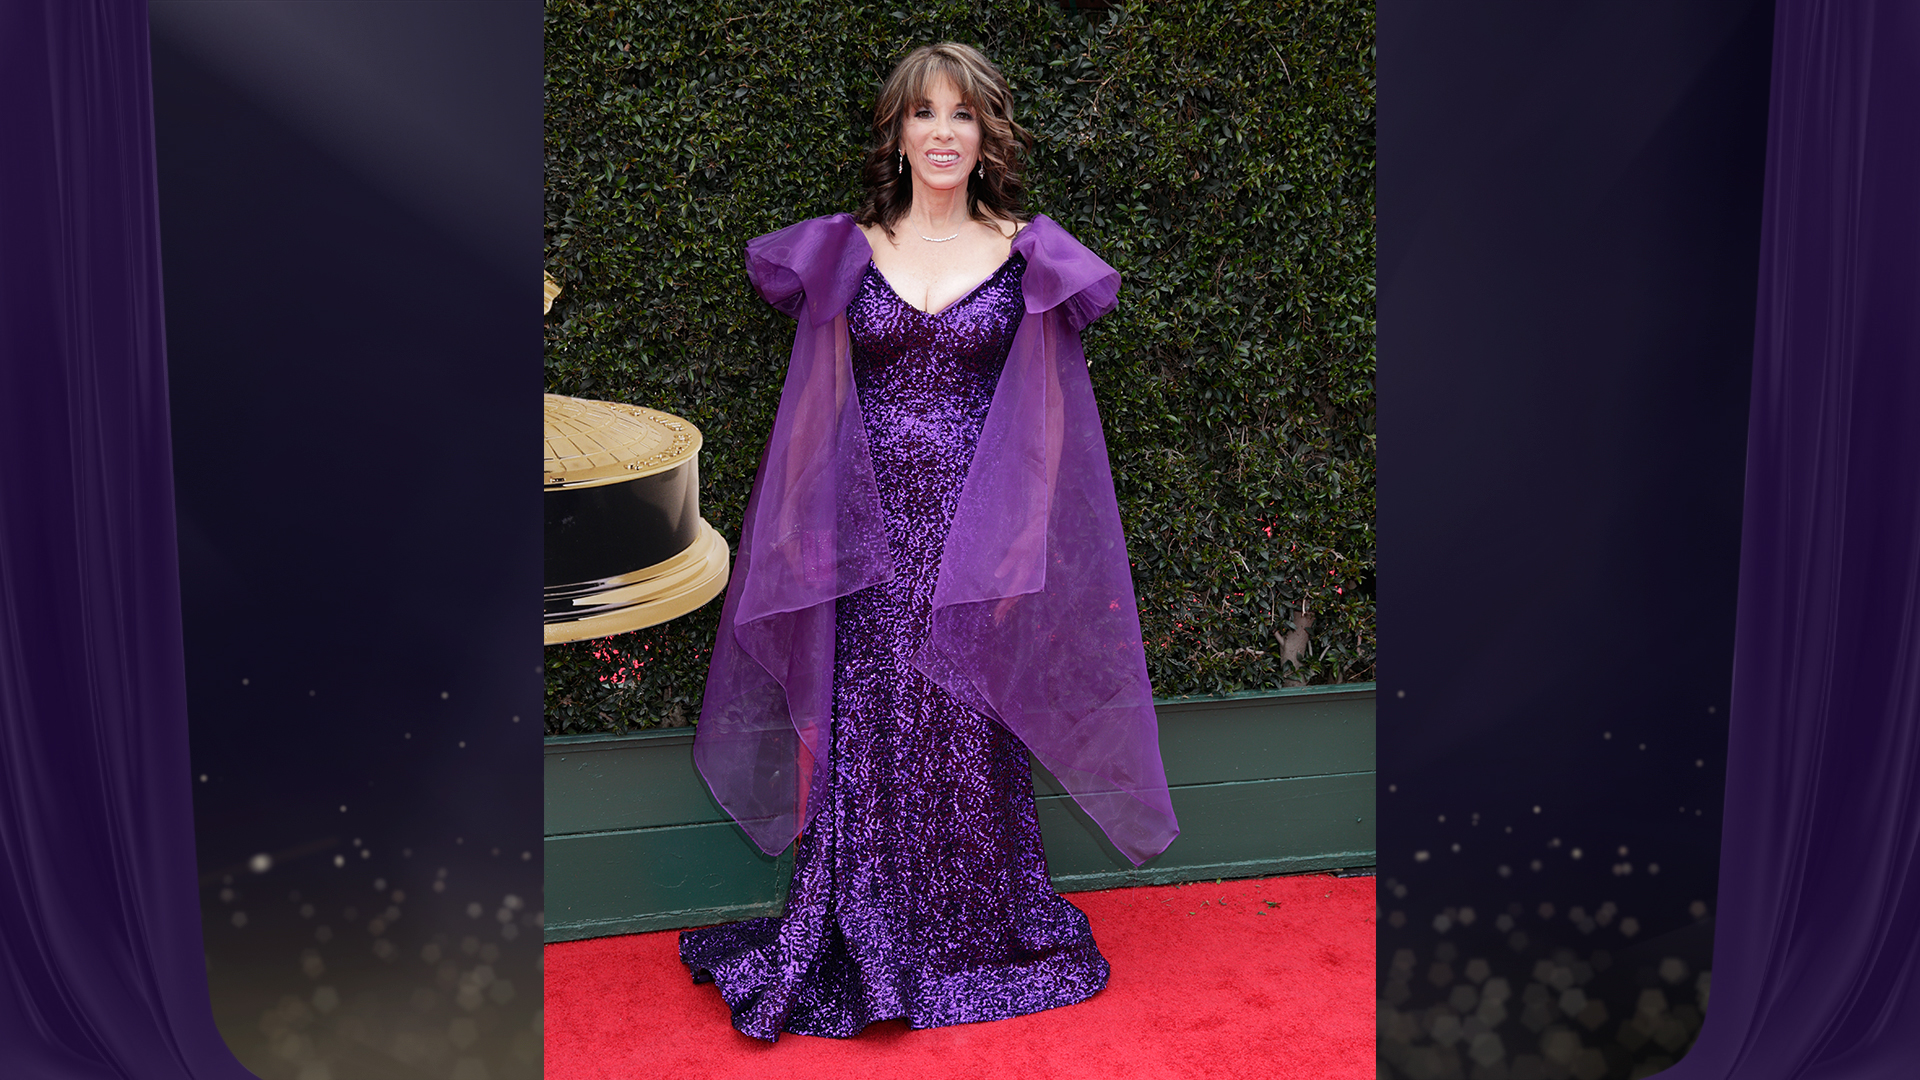 Kate Linder from The Young and the Restless sparkles in a purple sequin floor-length gown with matching violet chiffon cape.